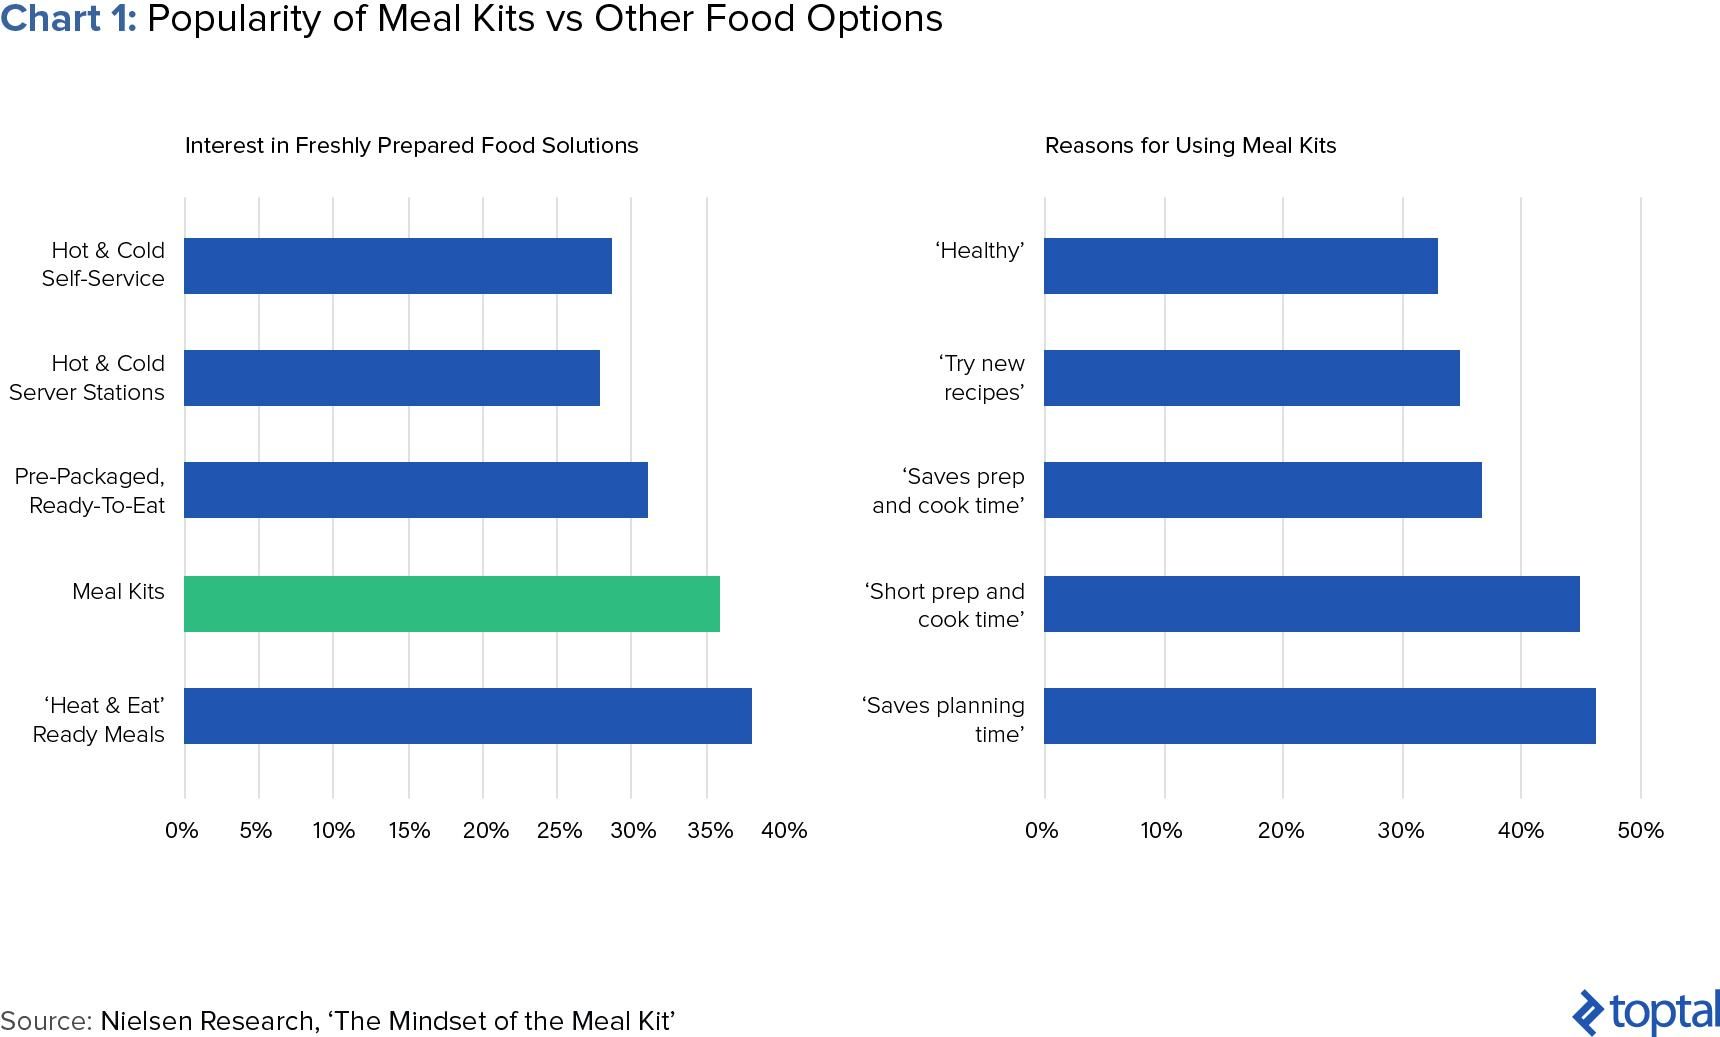 meal kits within the context of fresh meal eating popularity and reasons for using food subscription services